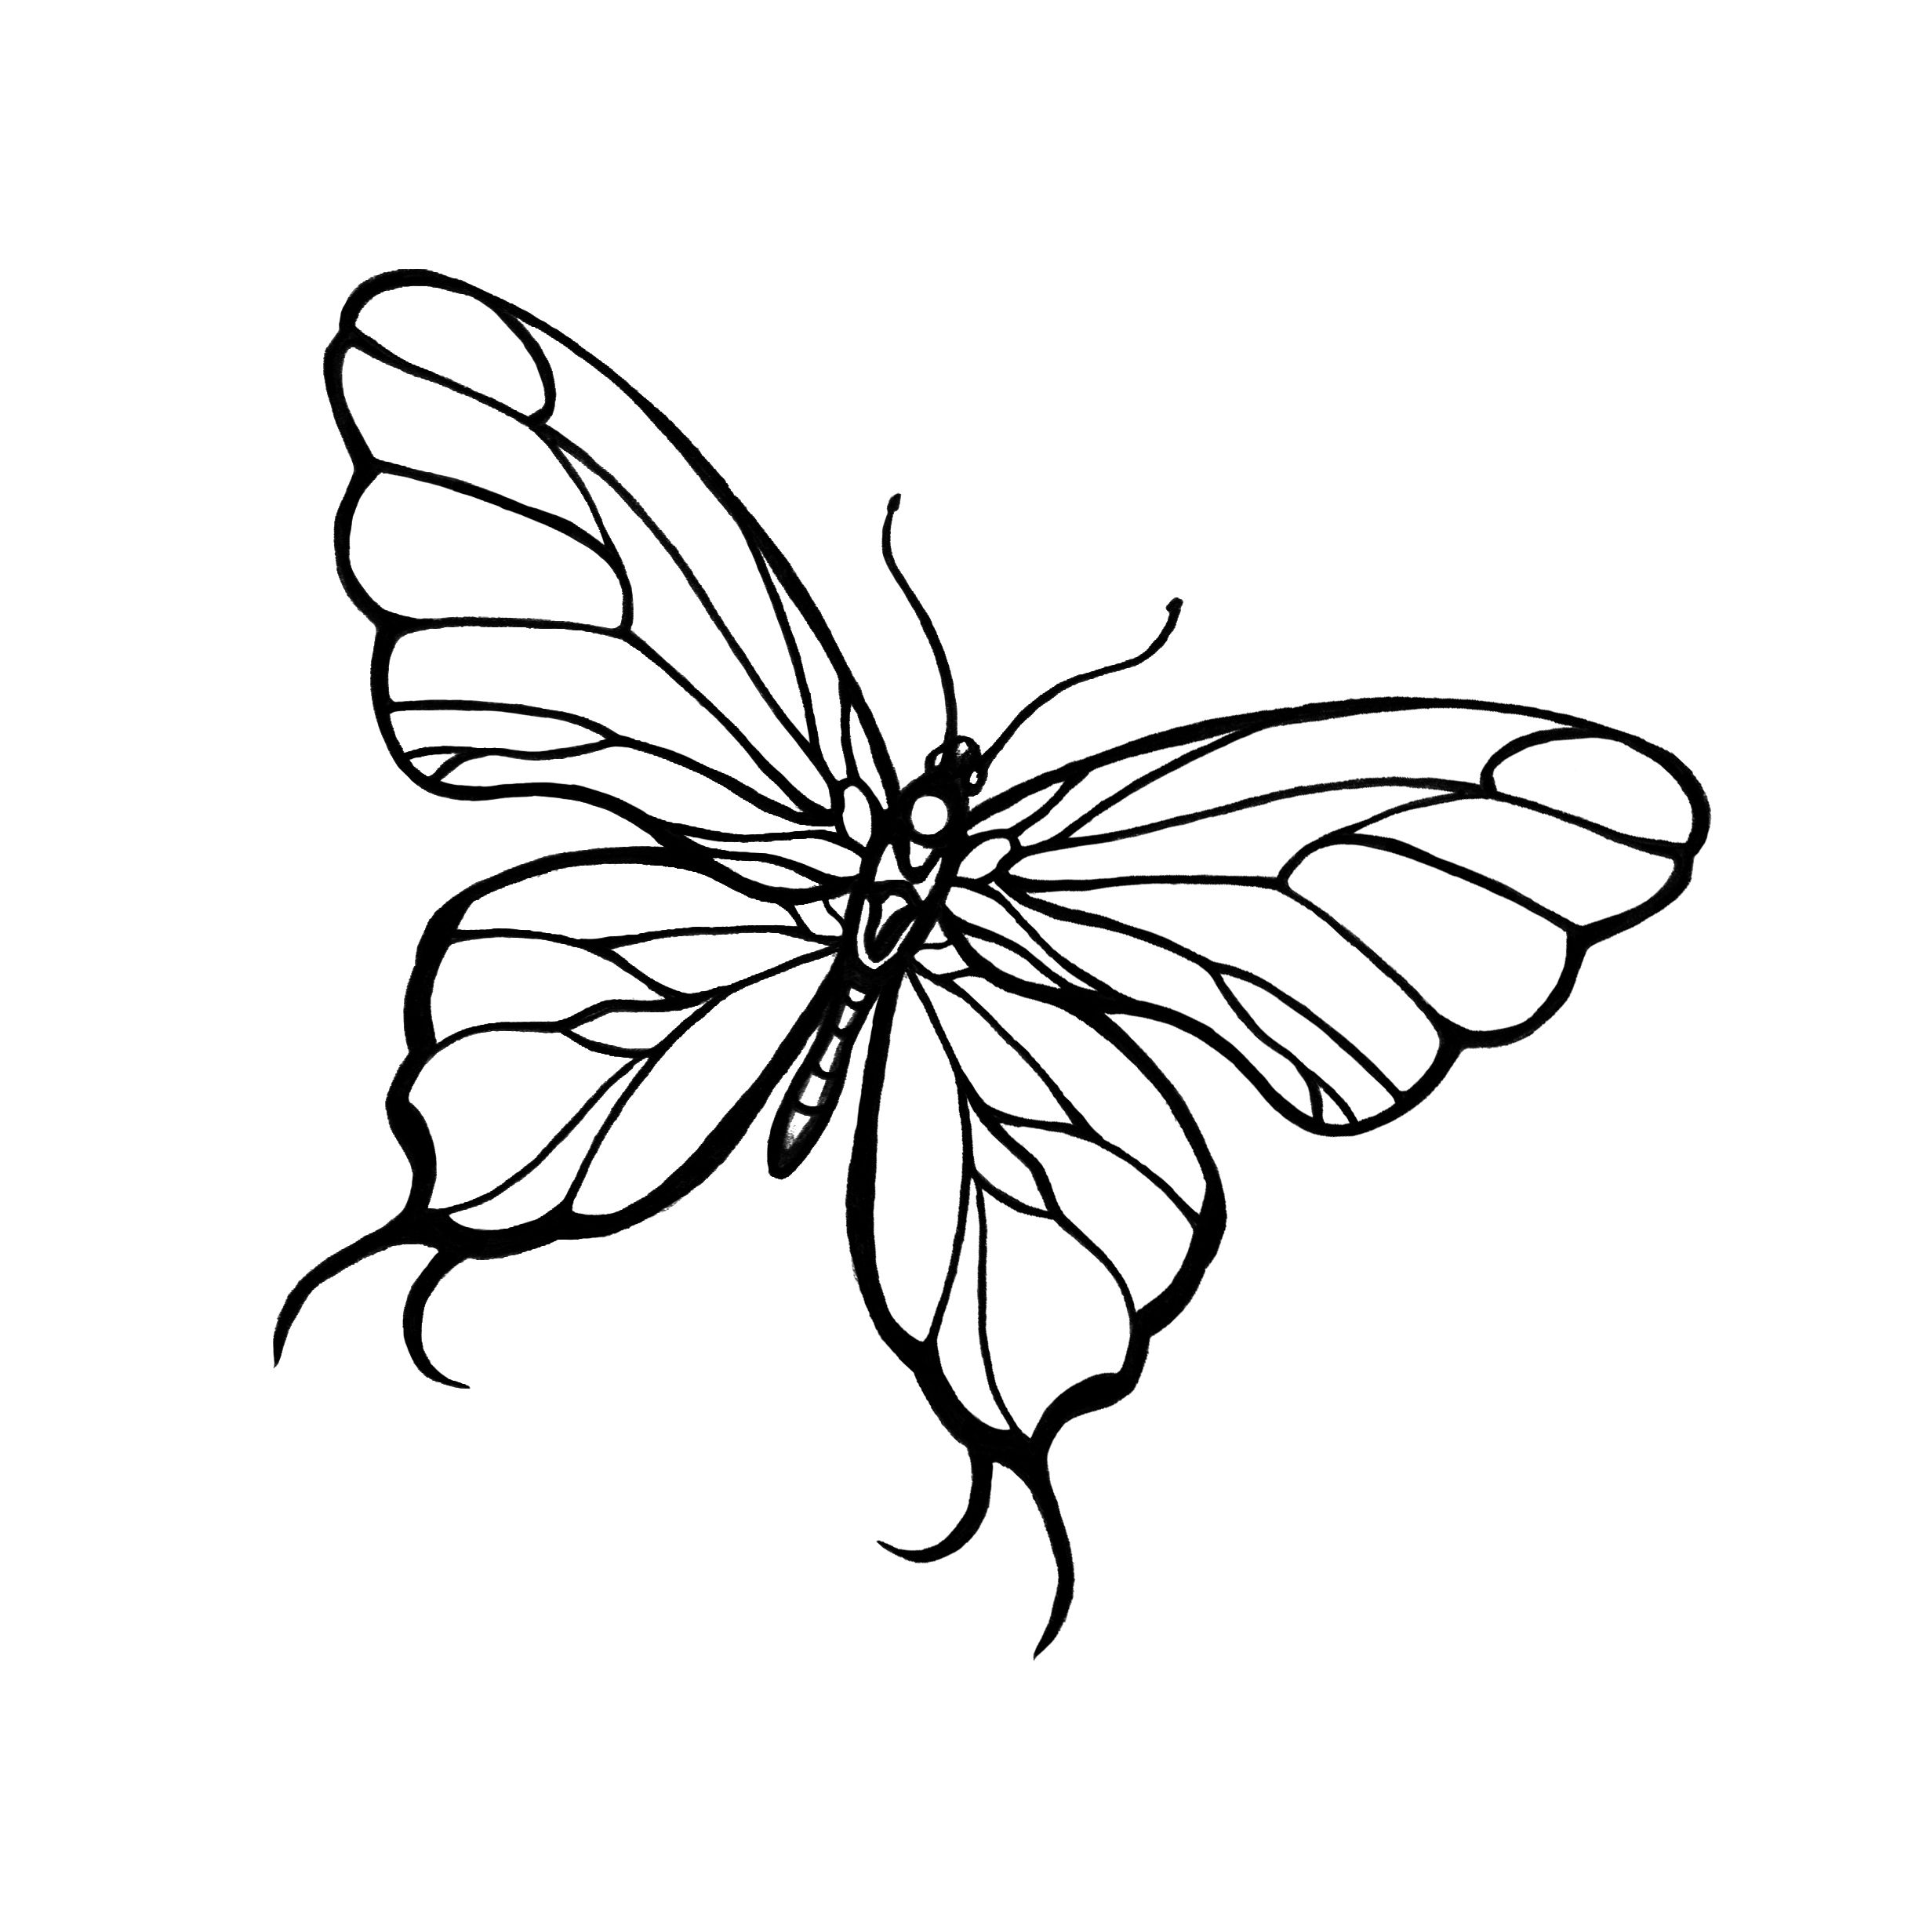 Contour Line Drawing Butterfly : Butterfly drawings little gift from tattoomenow